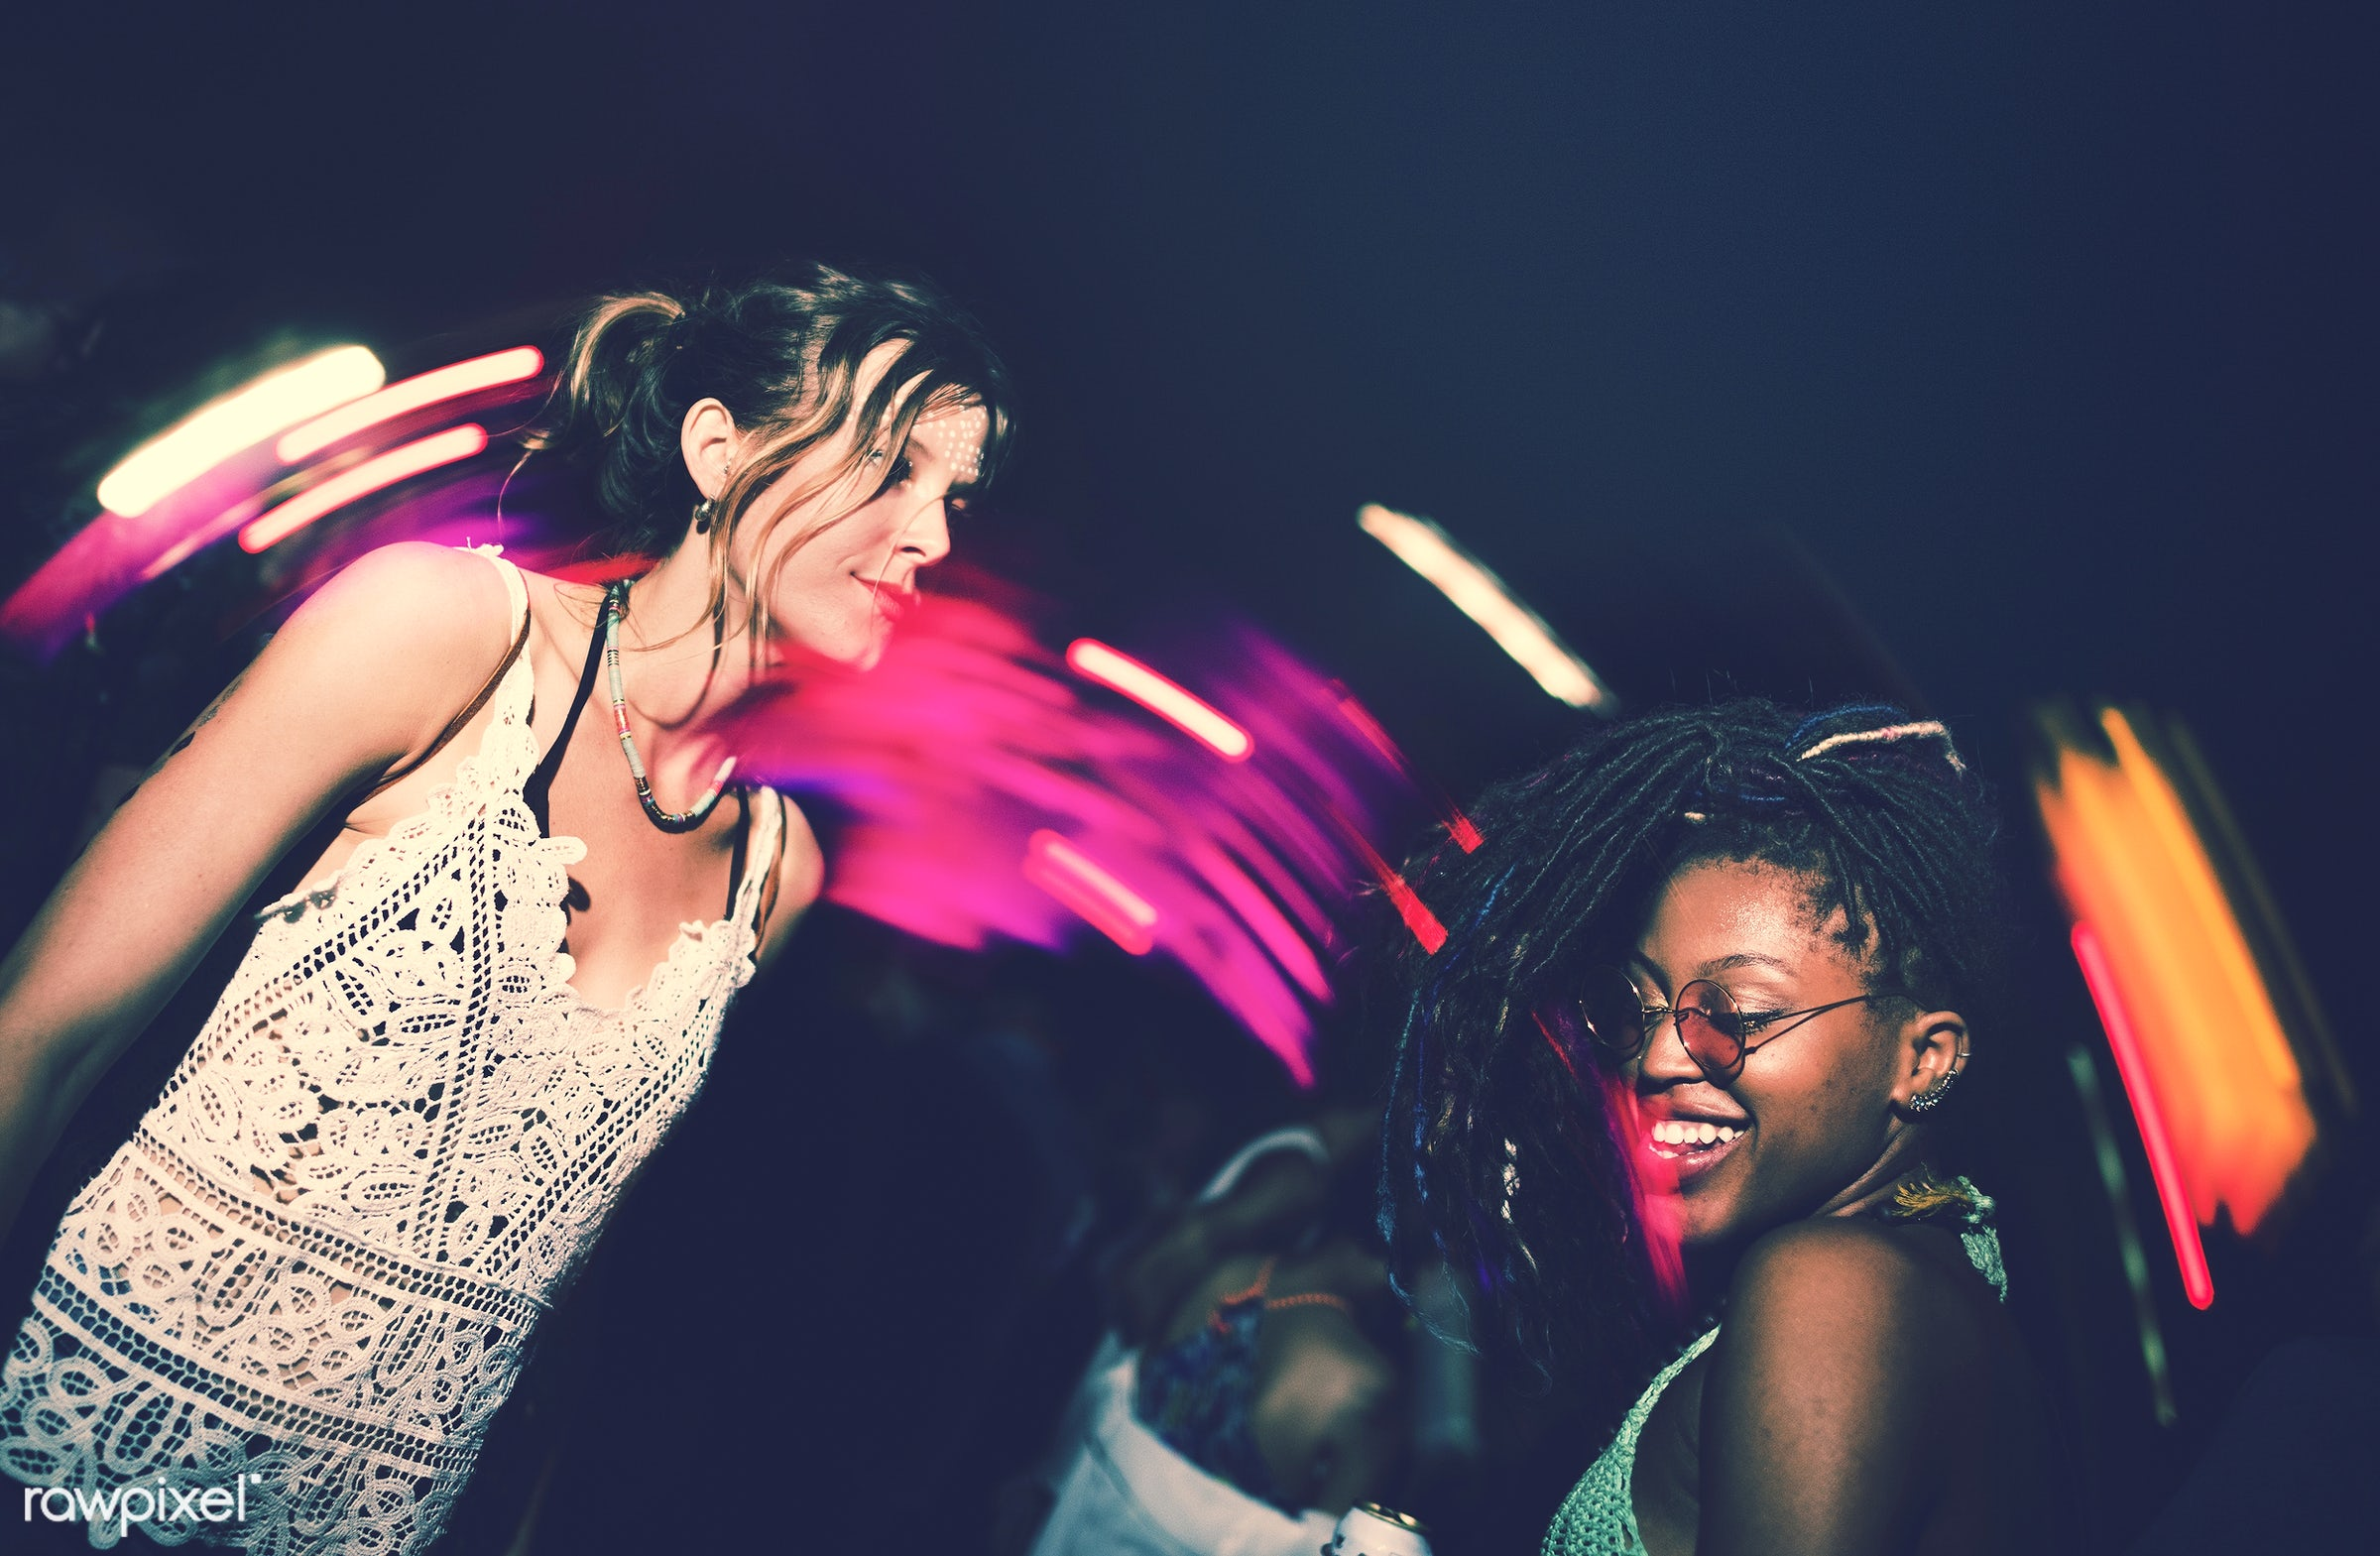 concert, person, relax, carefree, party, people, together, friends, socializing, hands, event, lifestyle, weekend,...